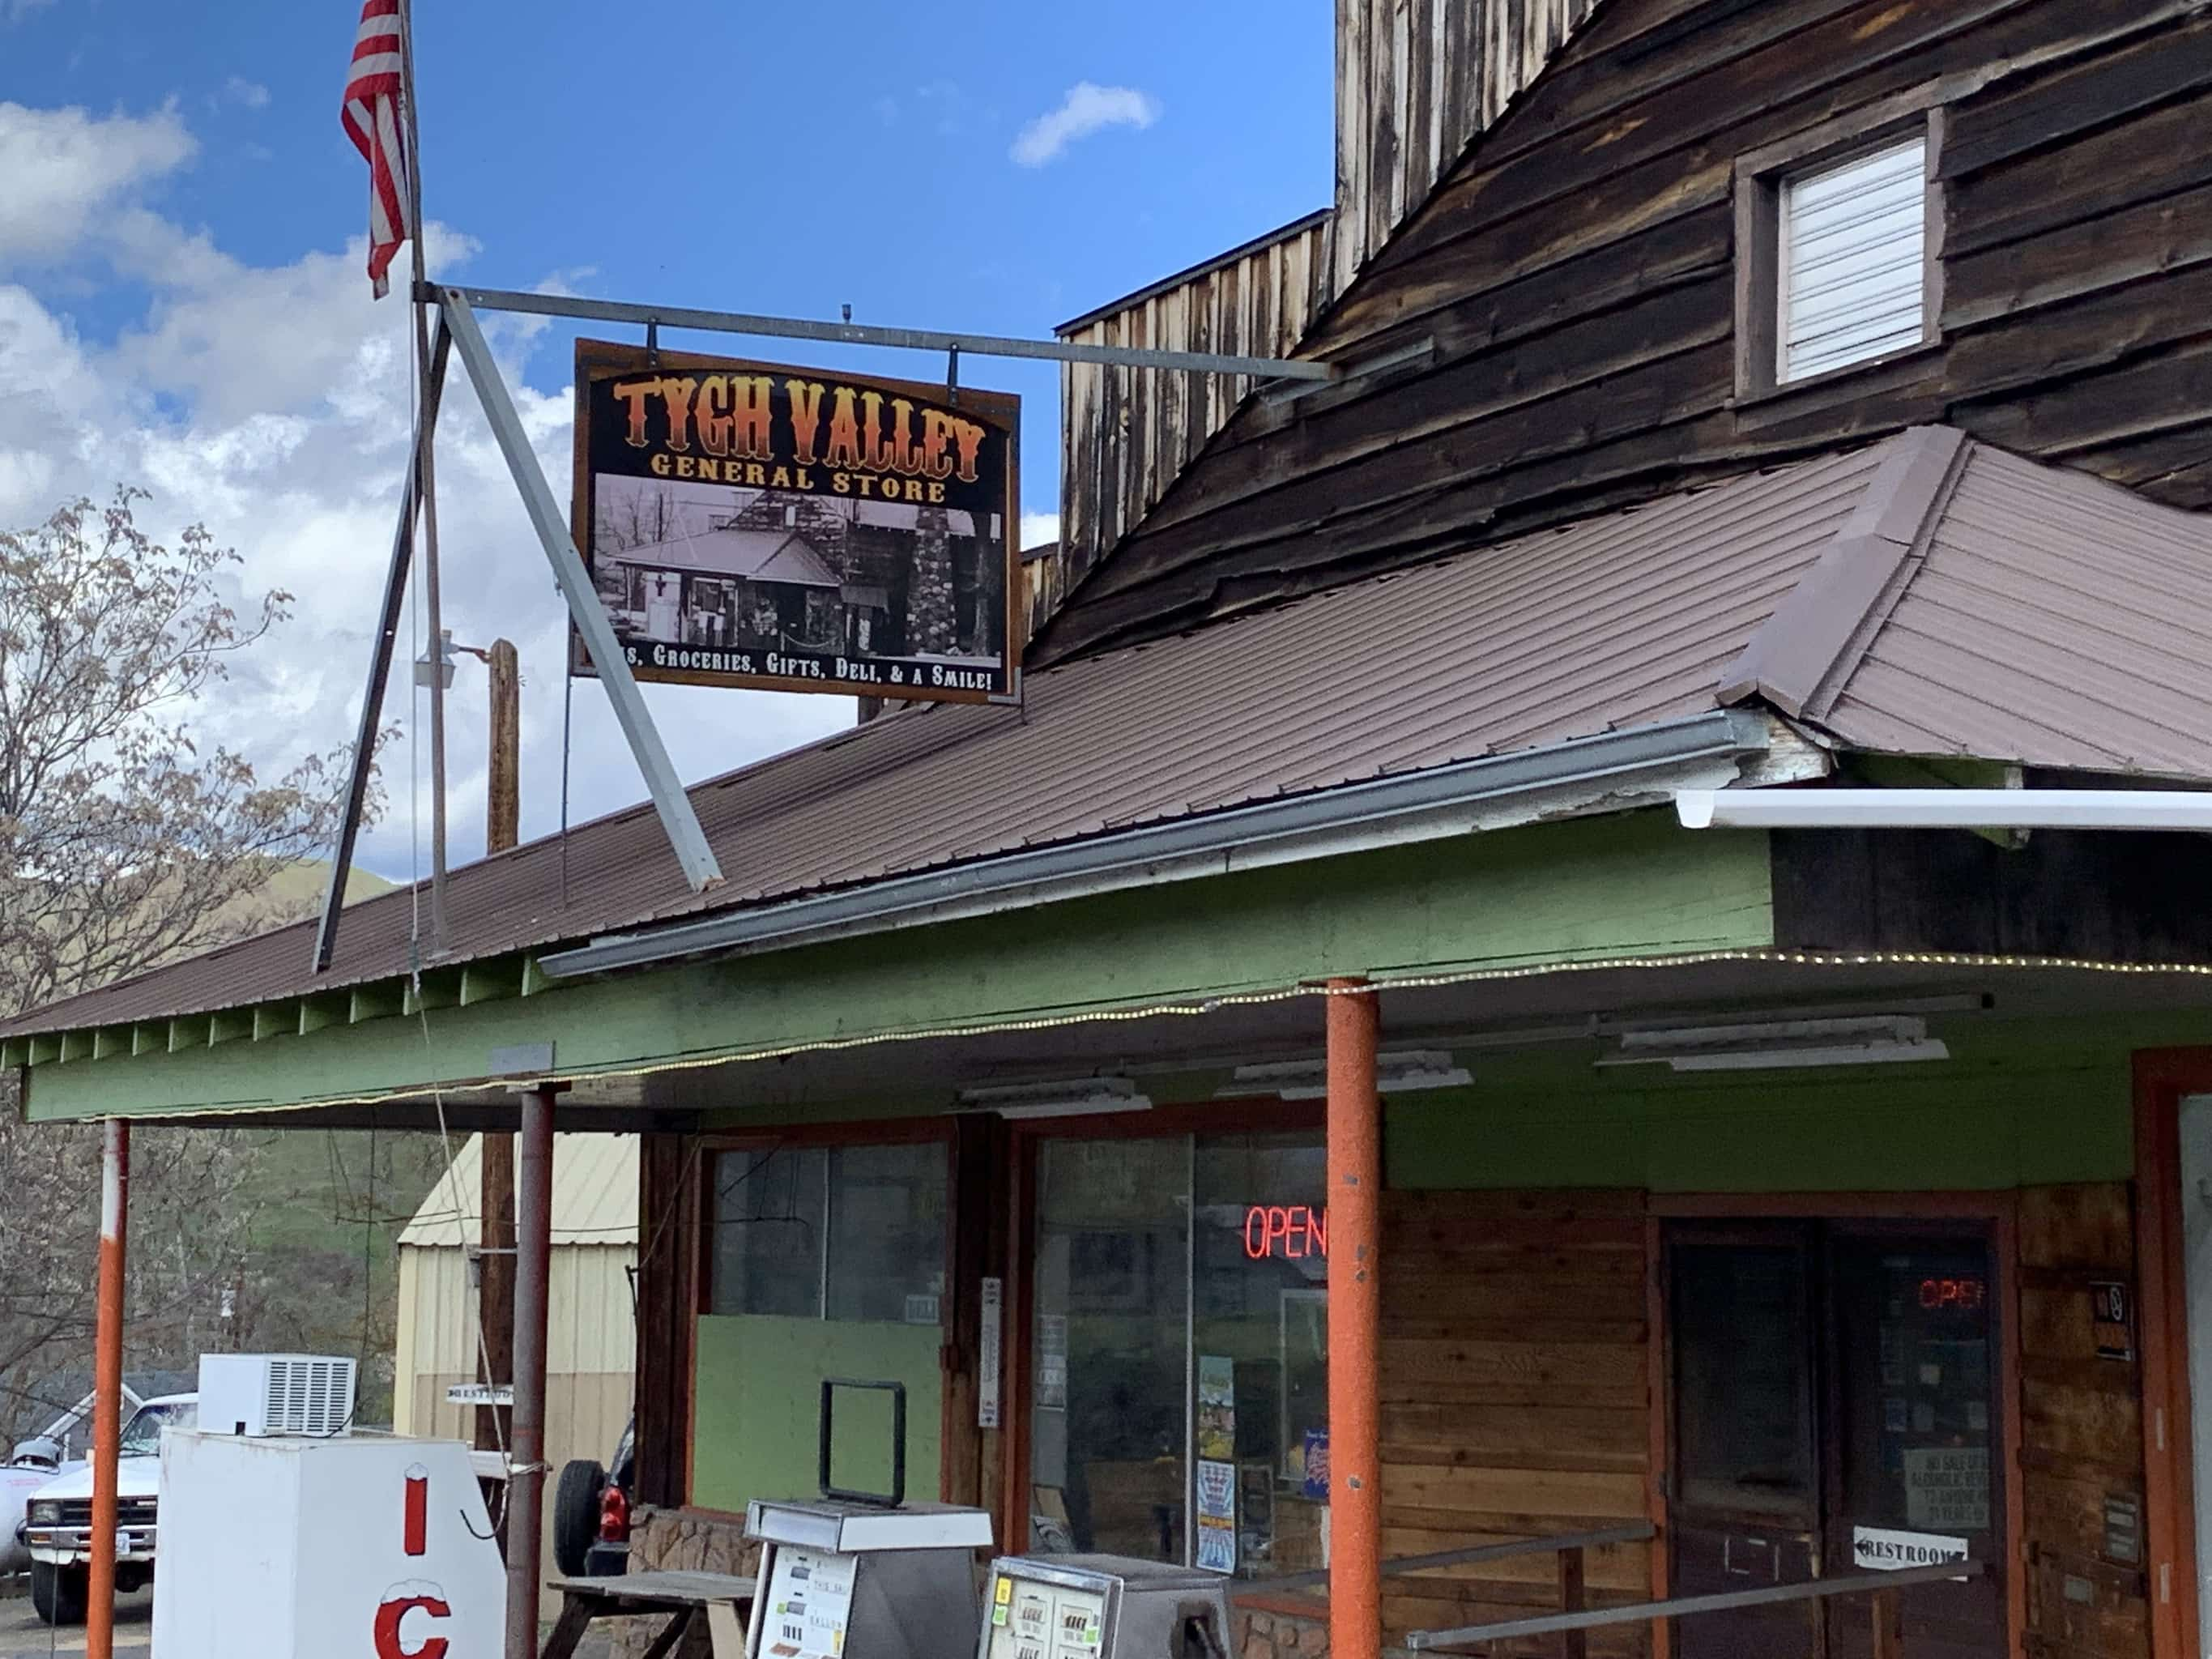 Tygh Valley General store. Tygh Valley, Oregon.